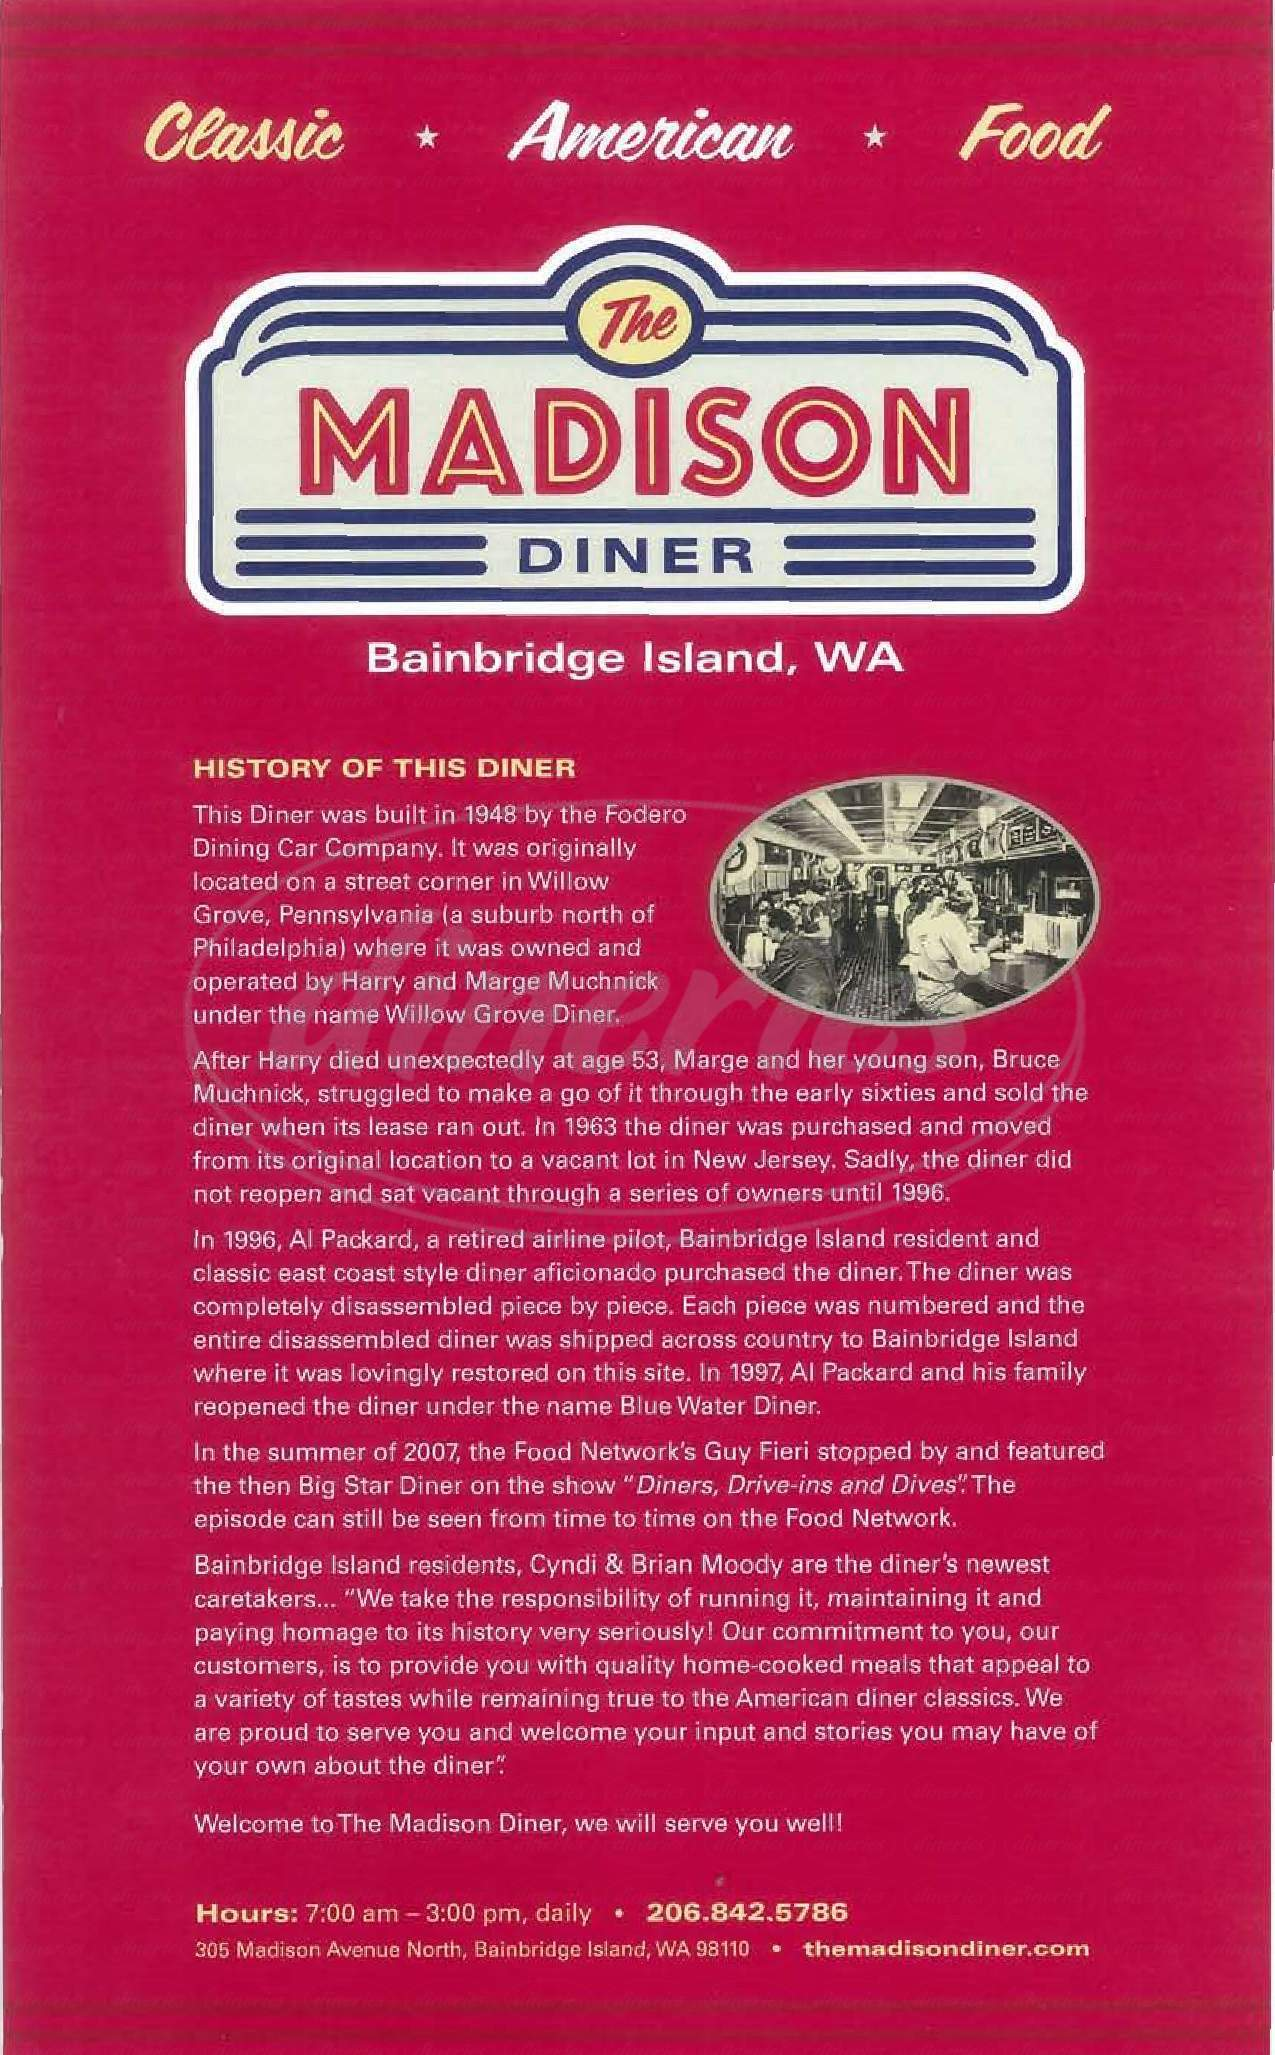 menu for The Madison Diner